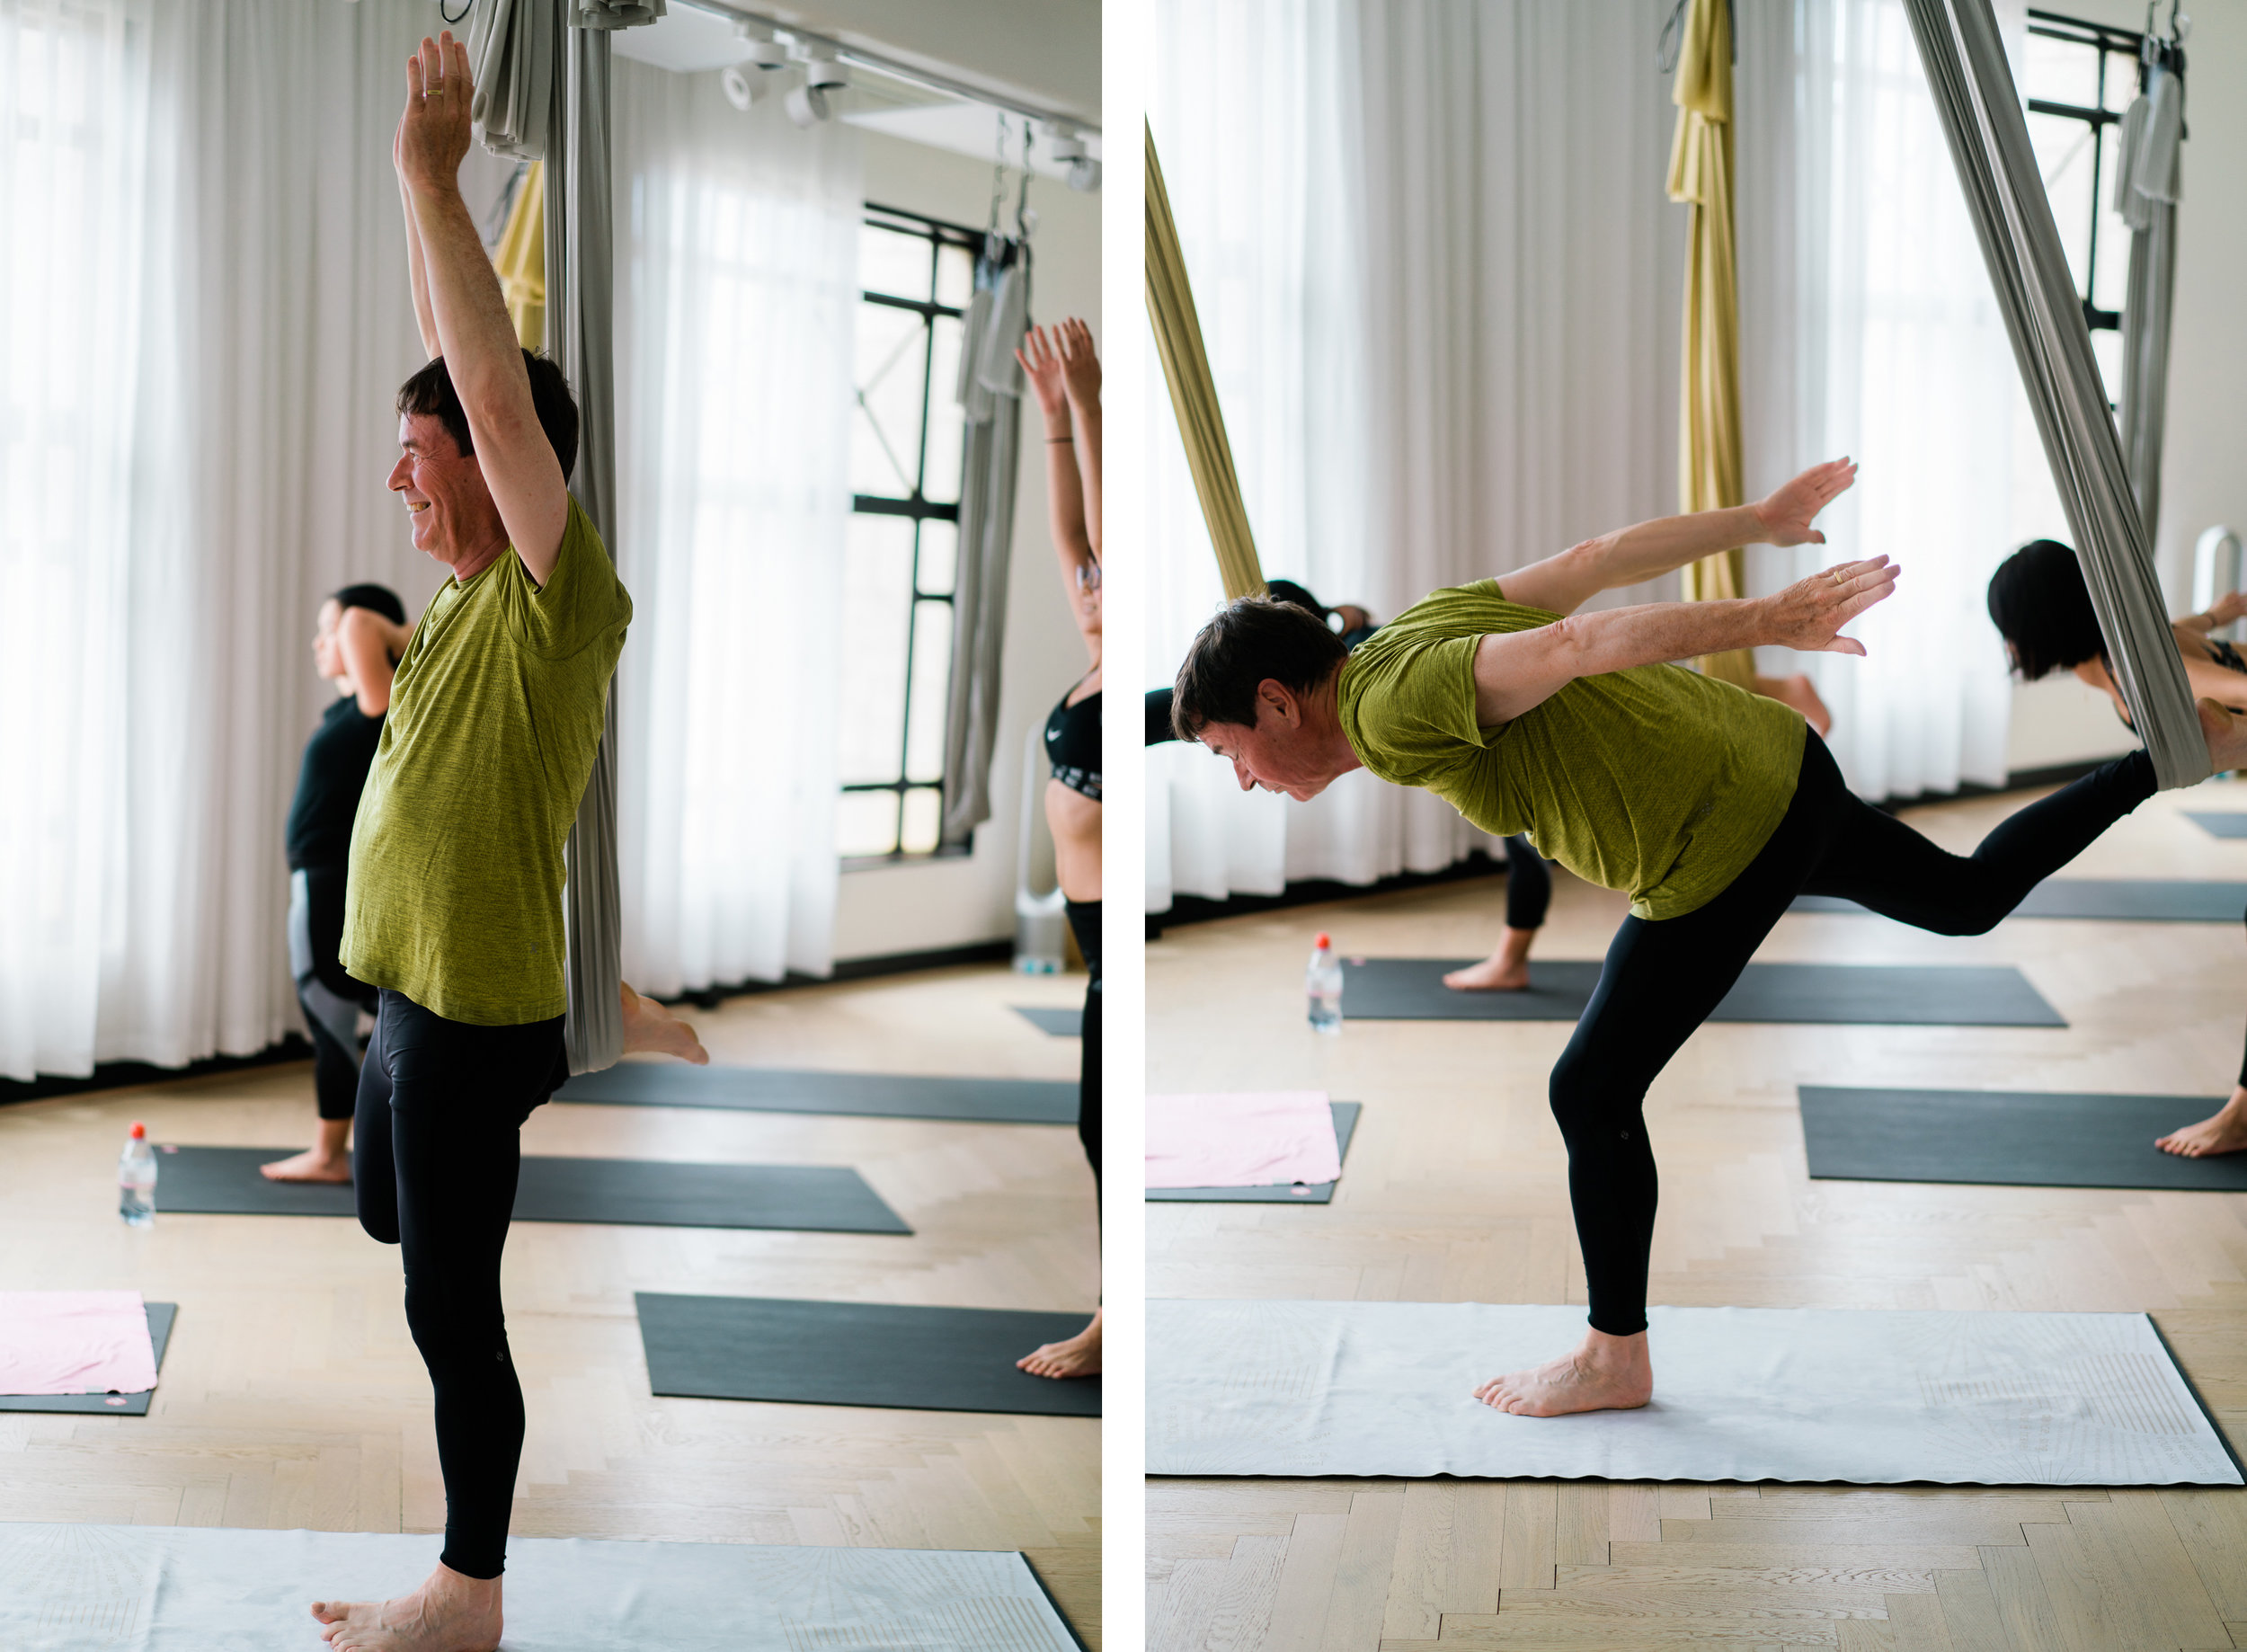 Little_Mandarin_Yoga_Michael_Gunn-blog9.jpg